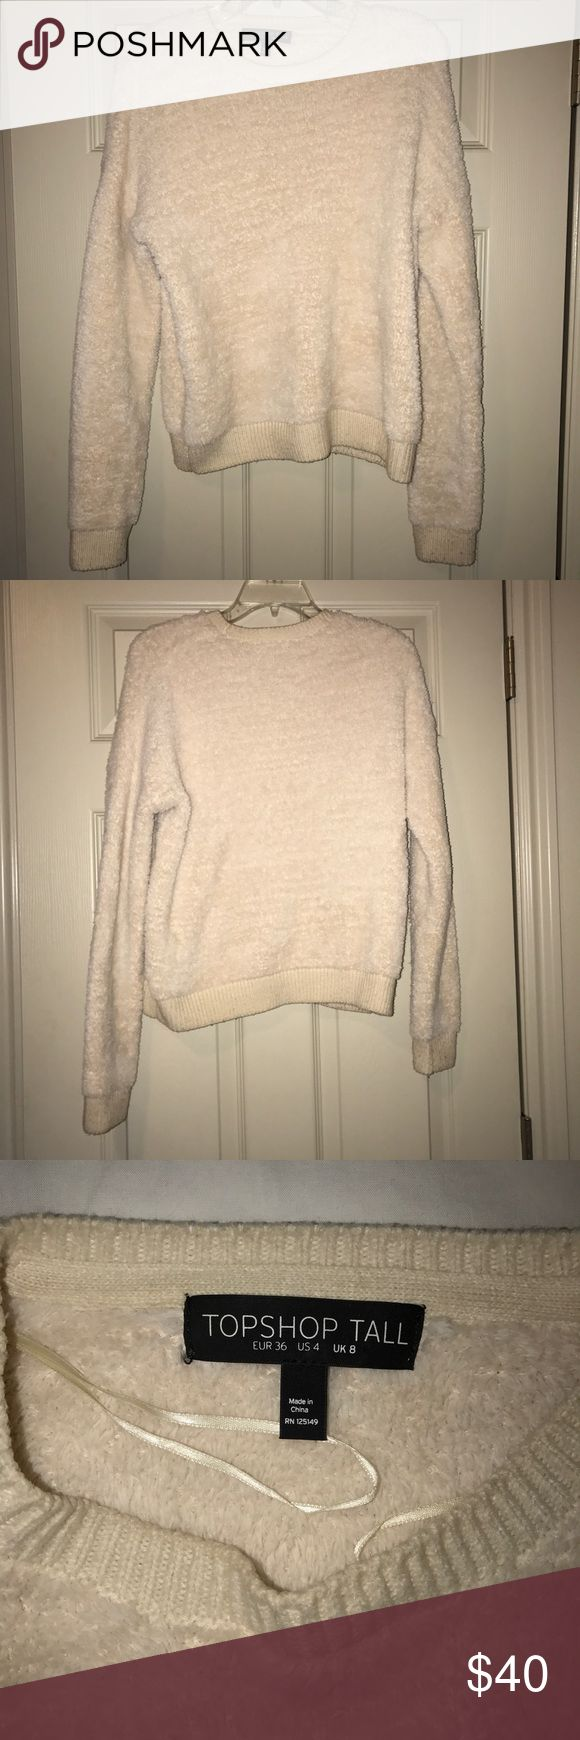 Topshop Tall Fuzzy Sweater SOFTEST SWEATER. Great condition! Cream color, so comfy and really warm. Topshop Sweaters Crew & Scoop Necks